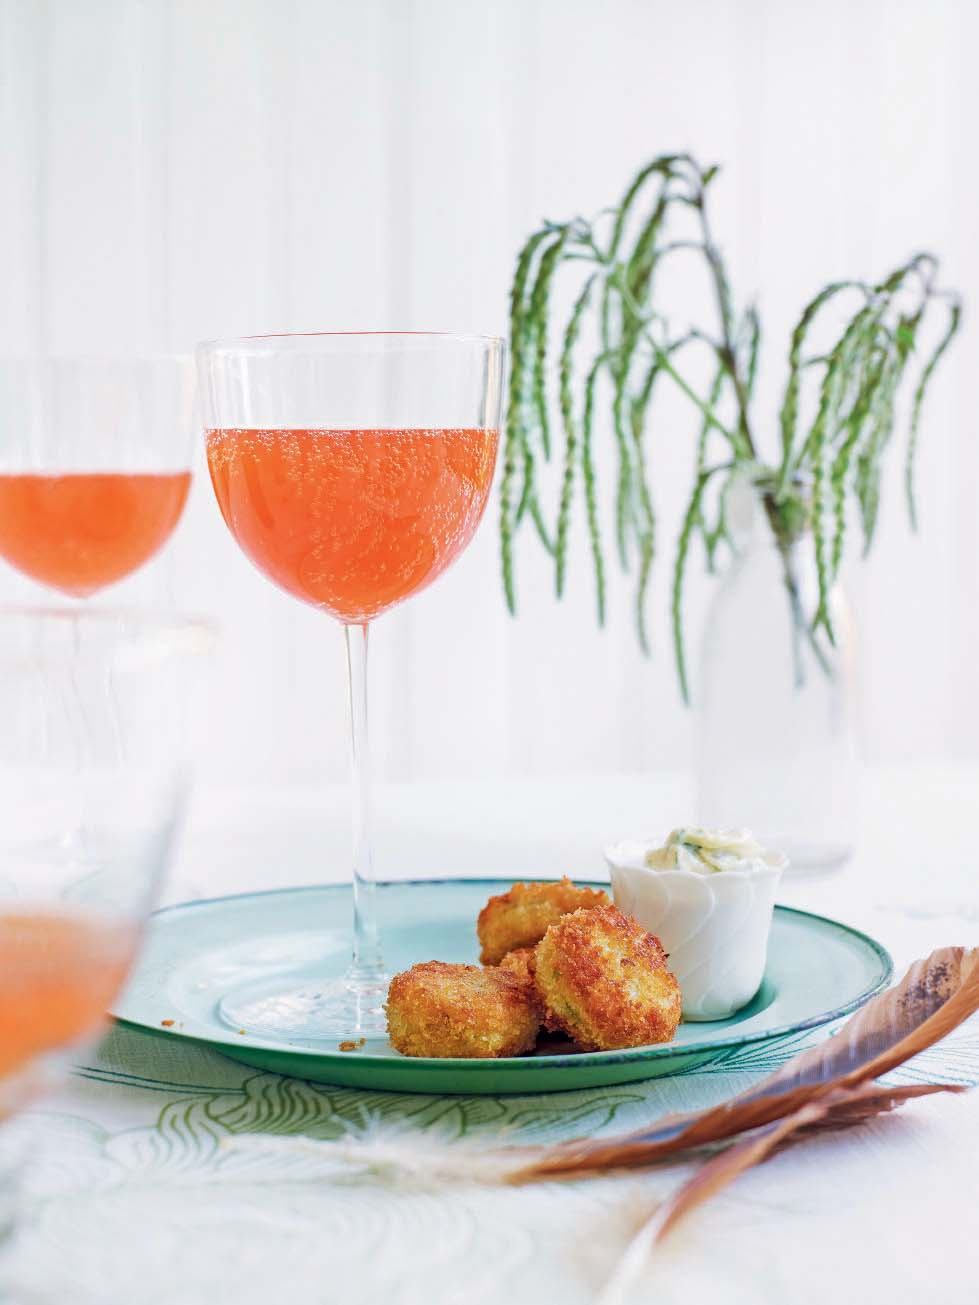 130109_003_CtailCrabcakes.jpg